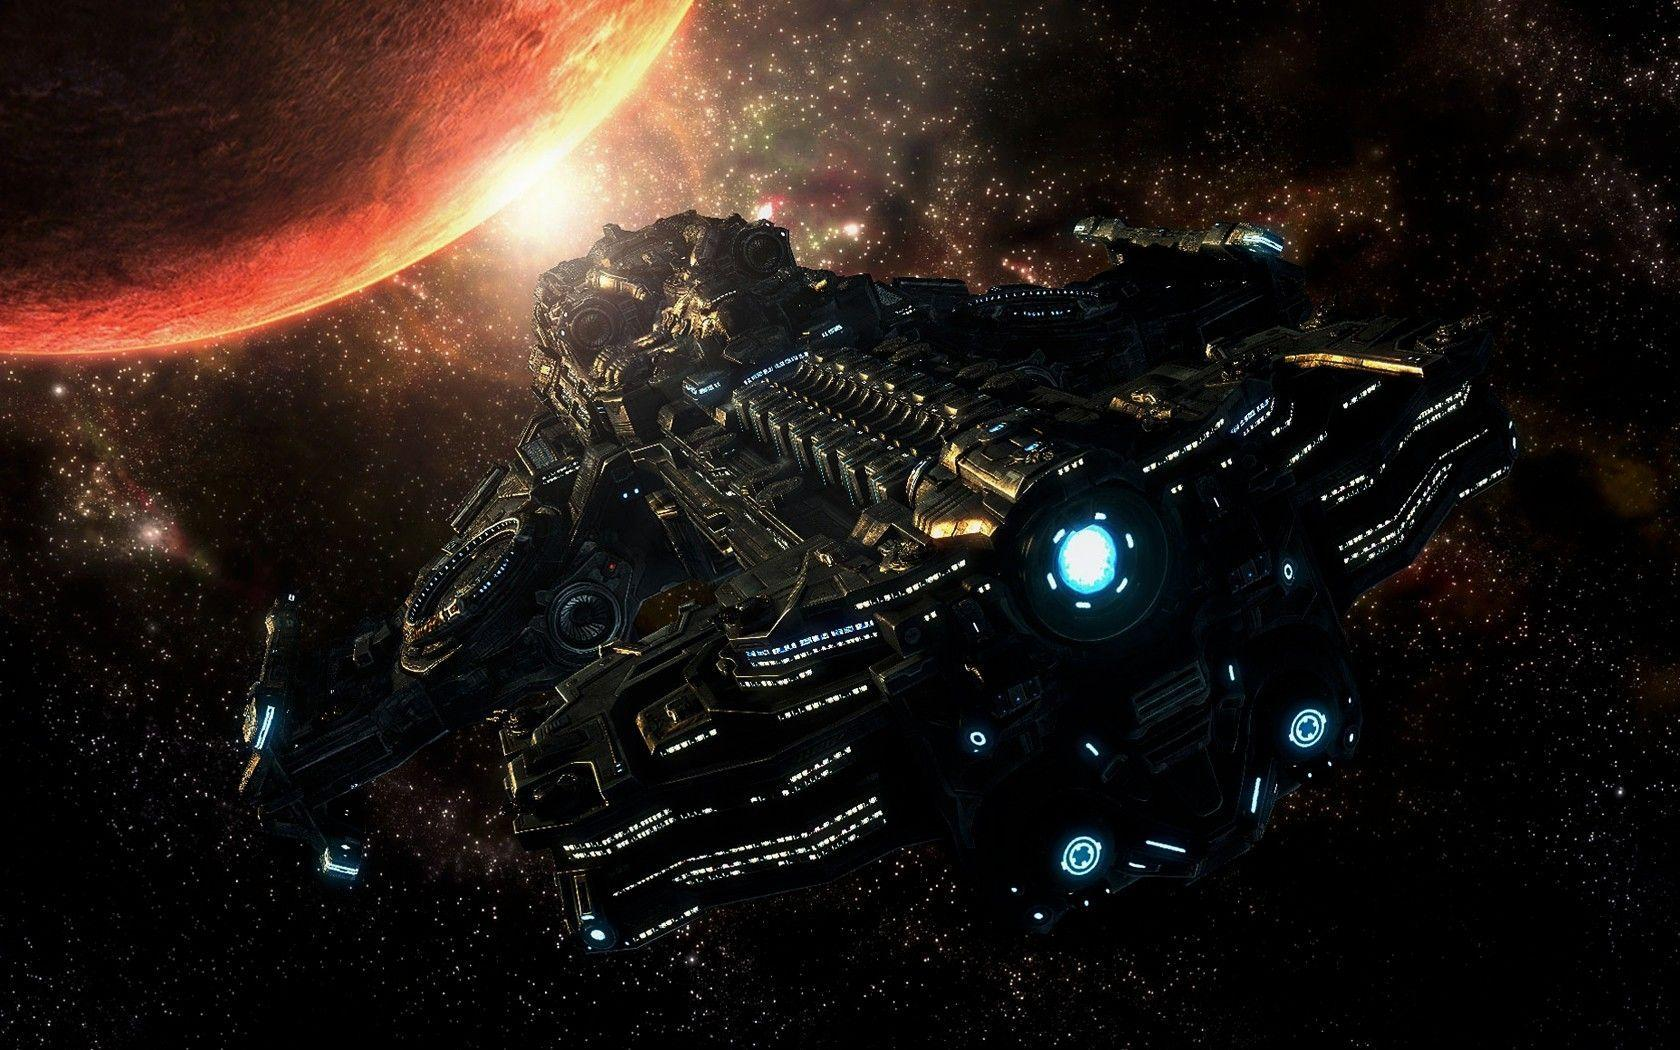 Wallpapers For > Spaceship Wallpaper